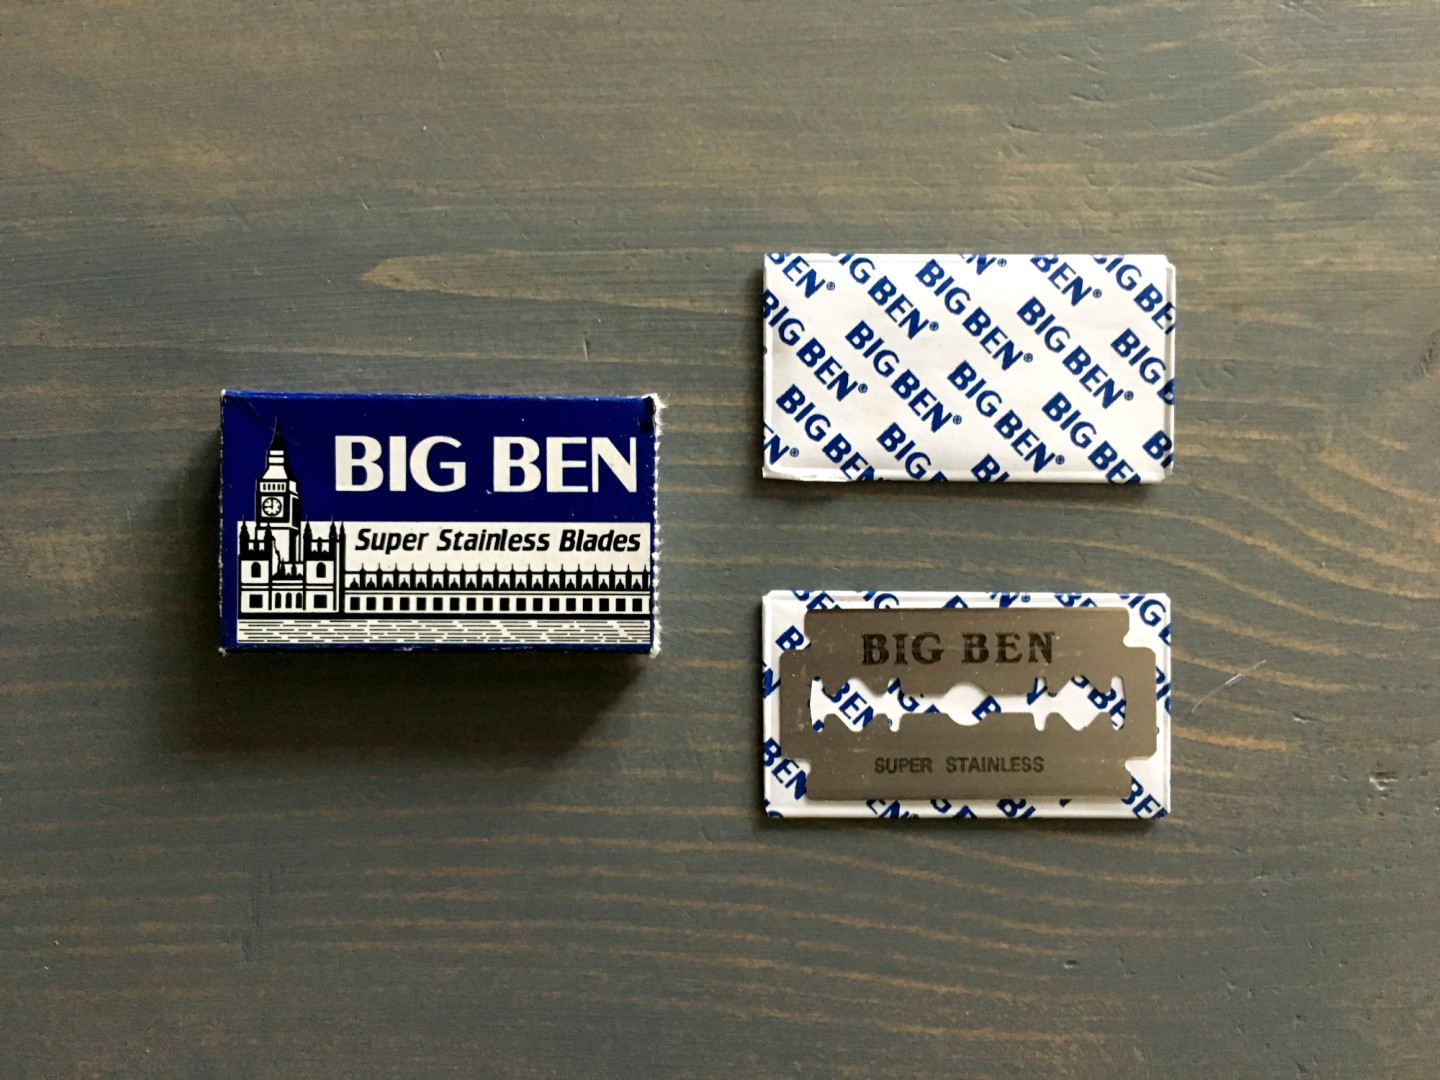 Big Ben Super Stainless Razor Blade Review